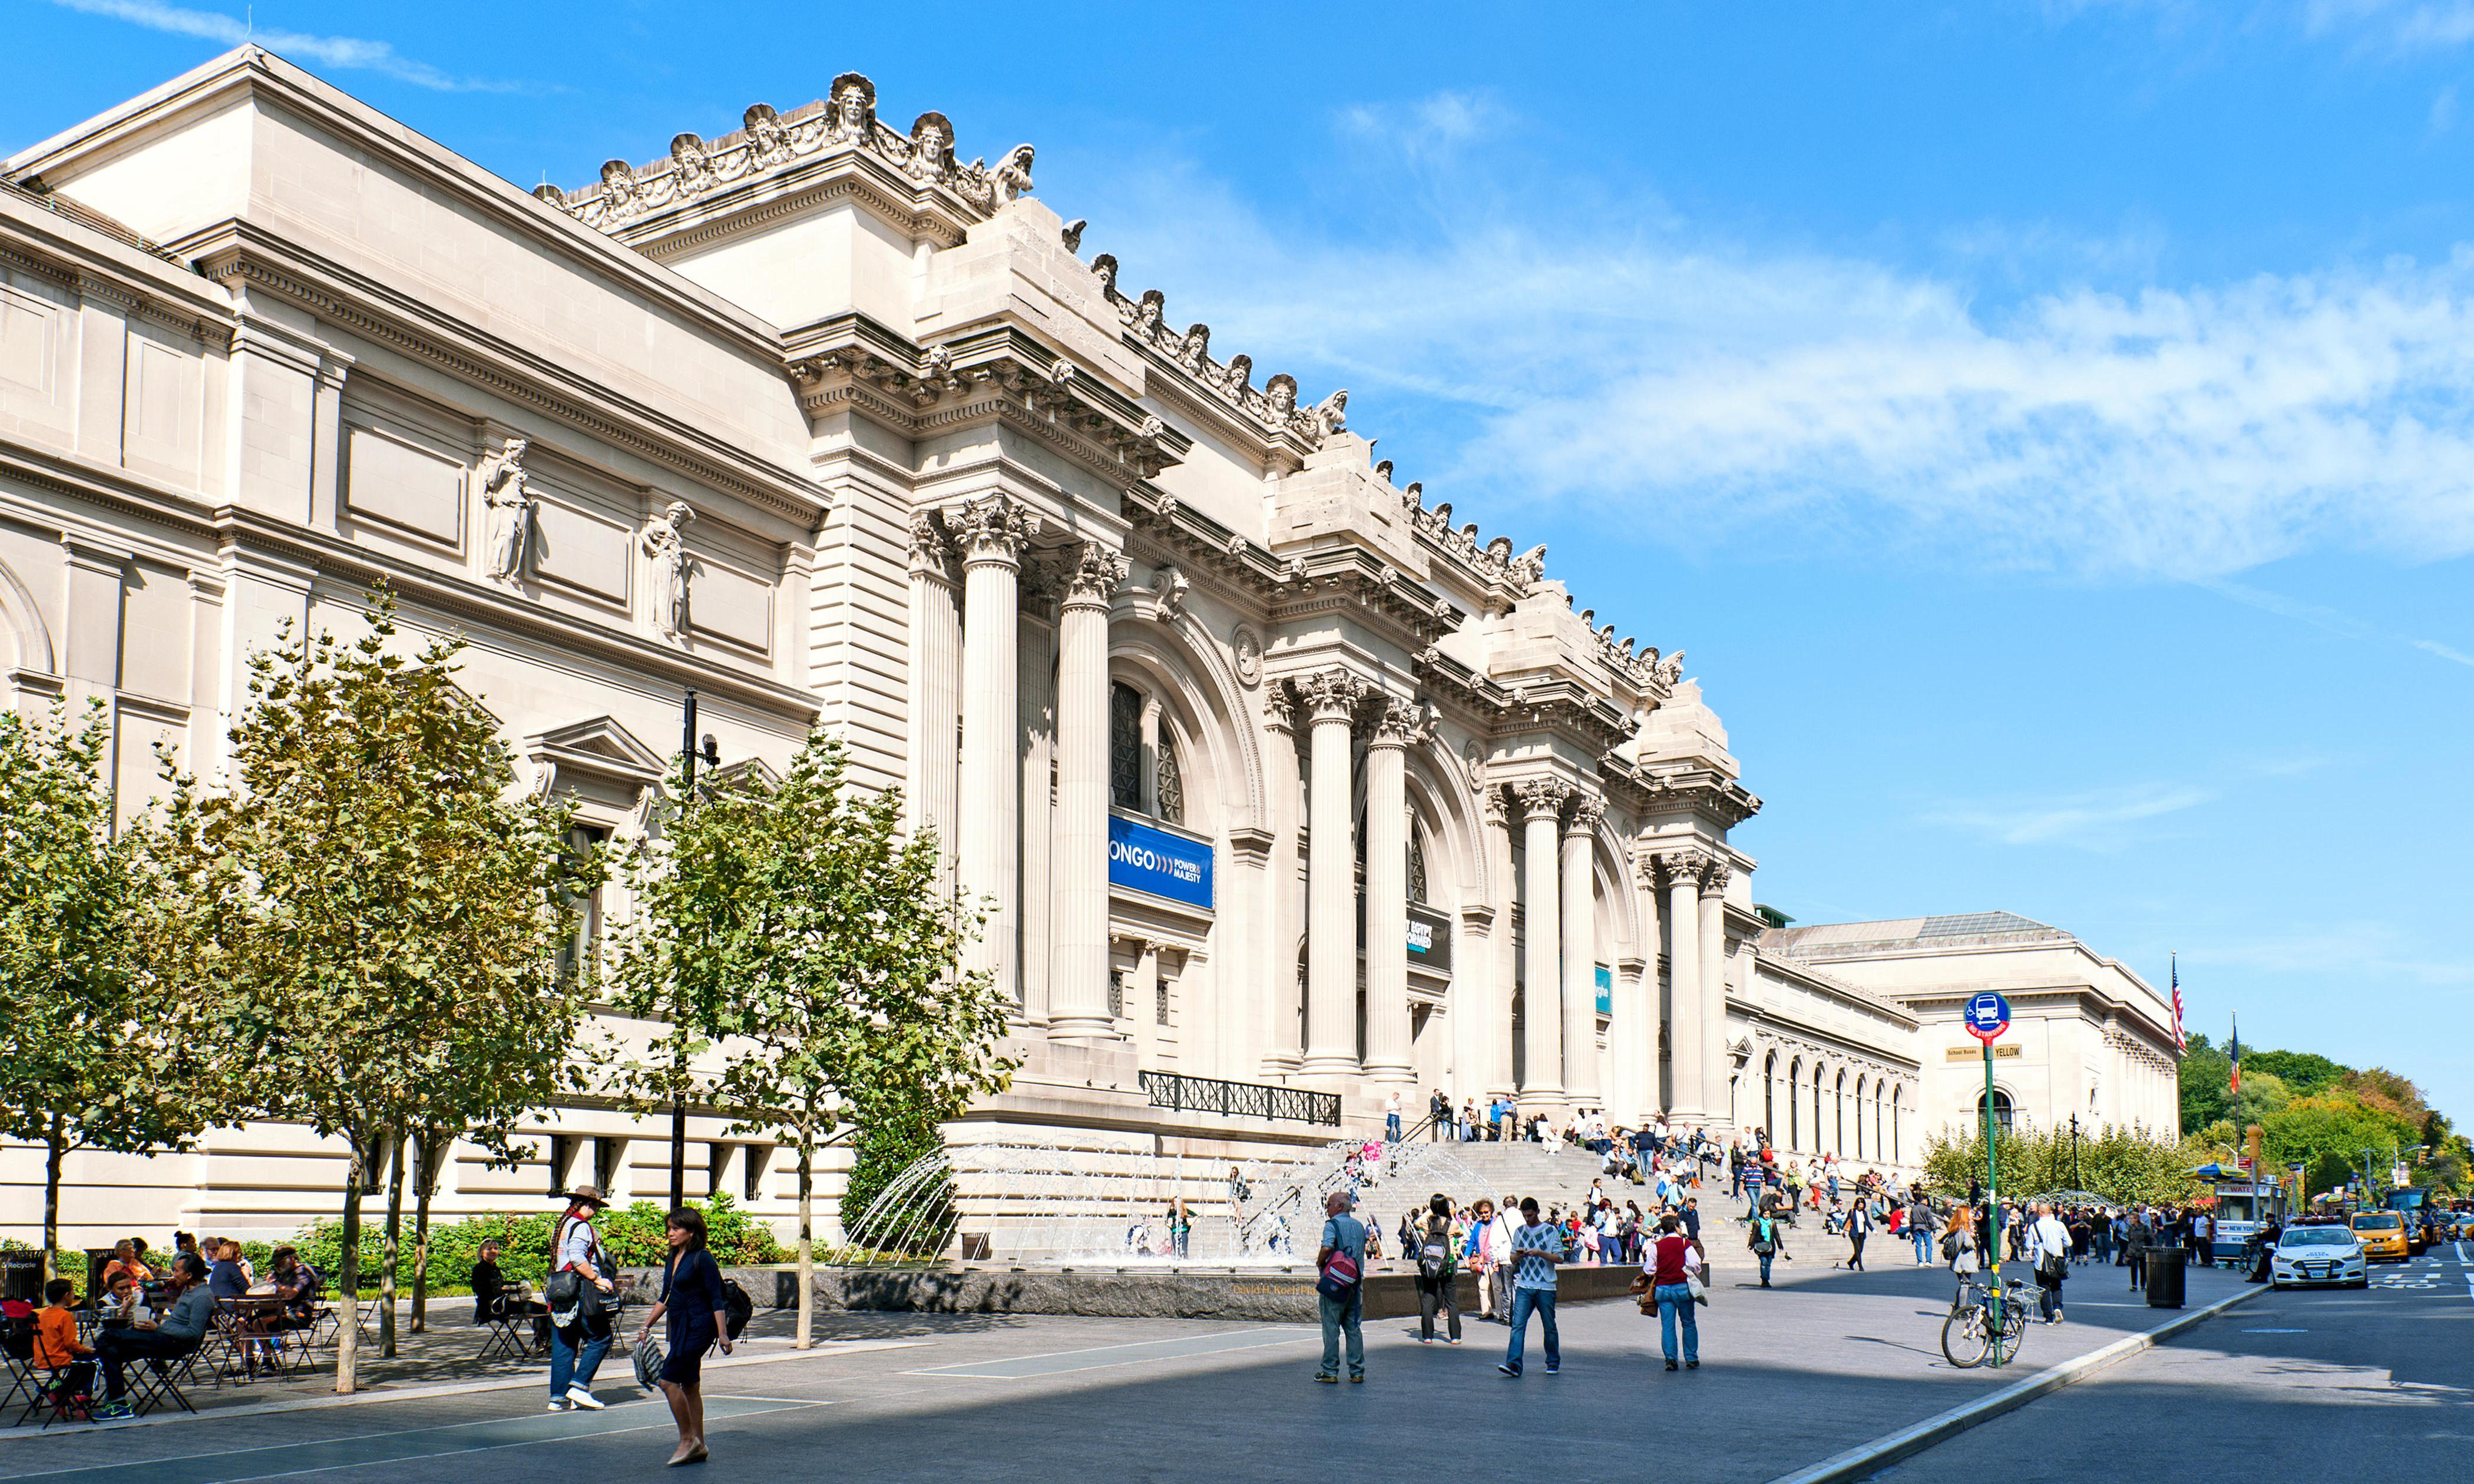 Museums in US still failing with artist diversity, study finds